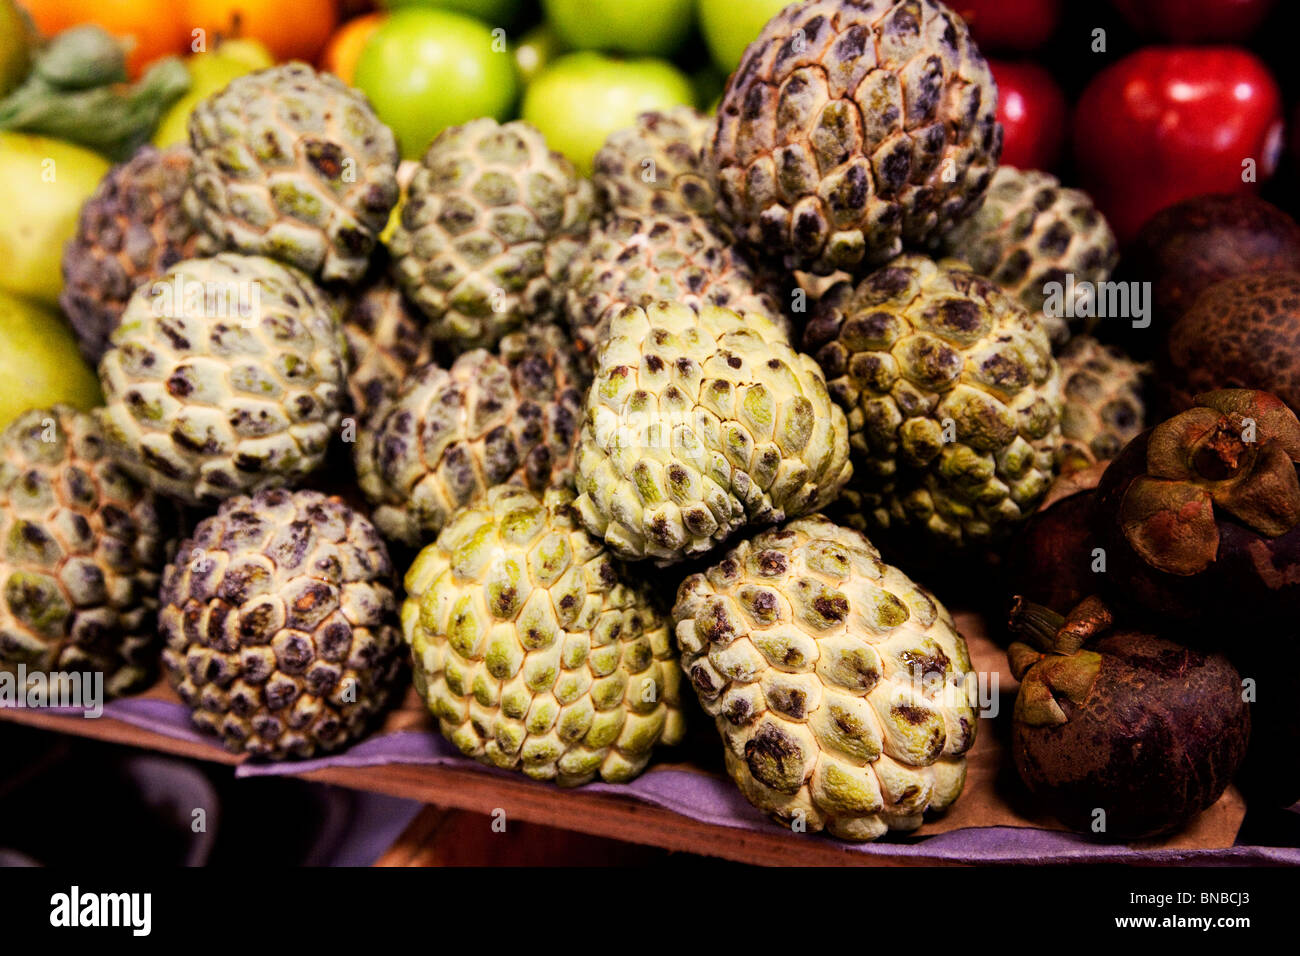 Colombian fruit and vegetable market - Stock Image